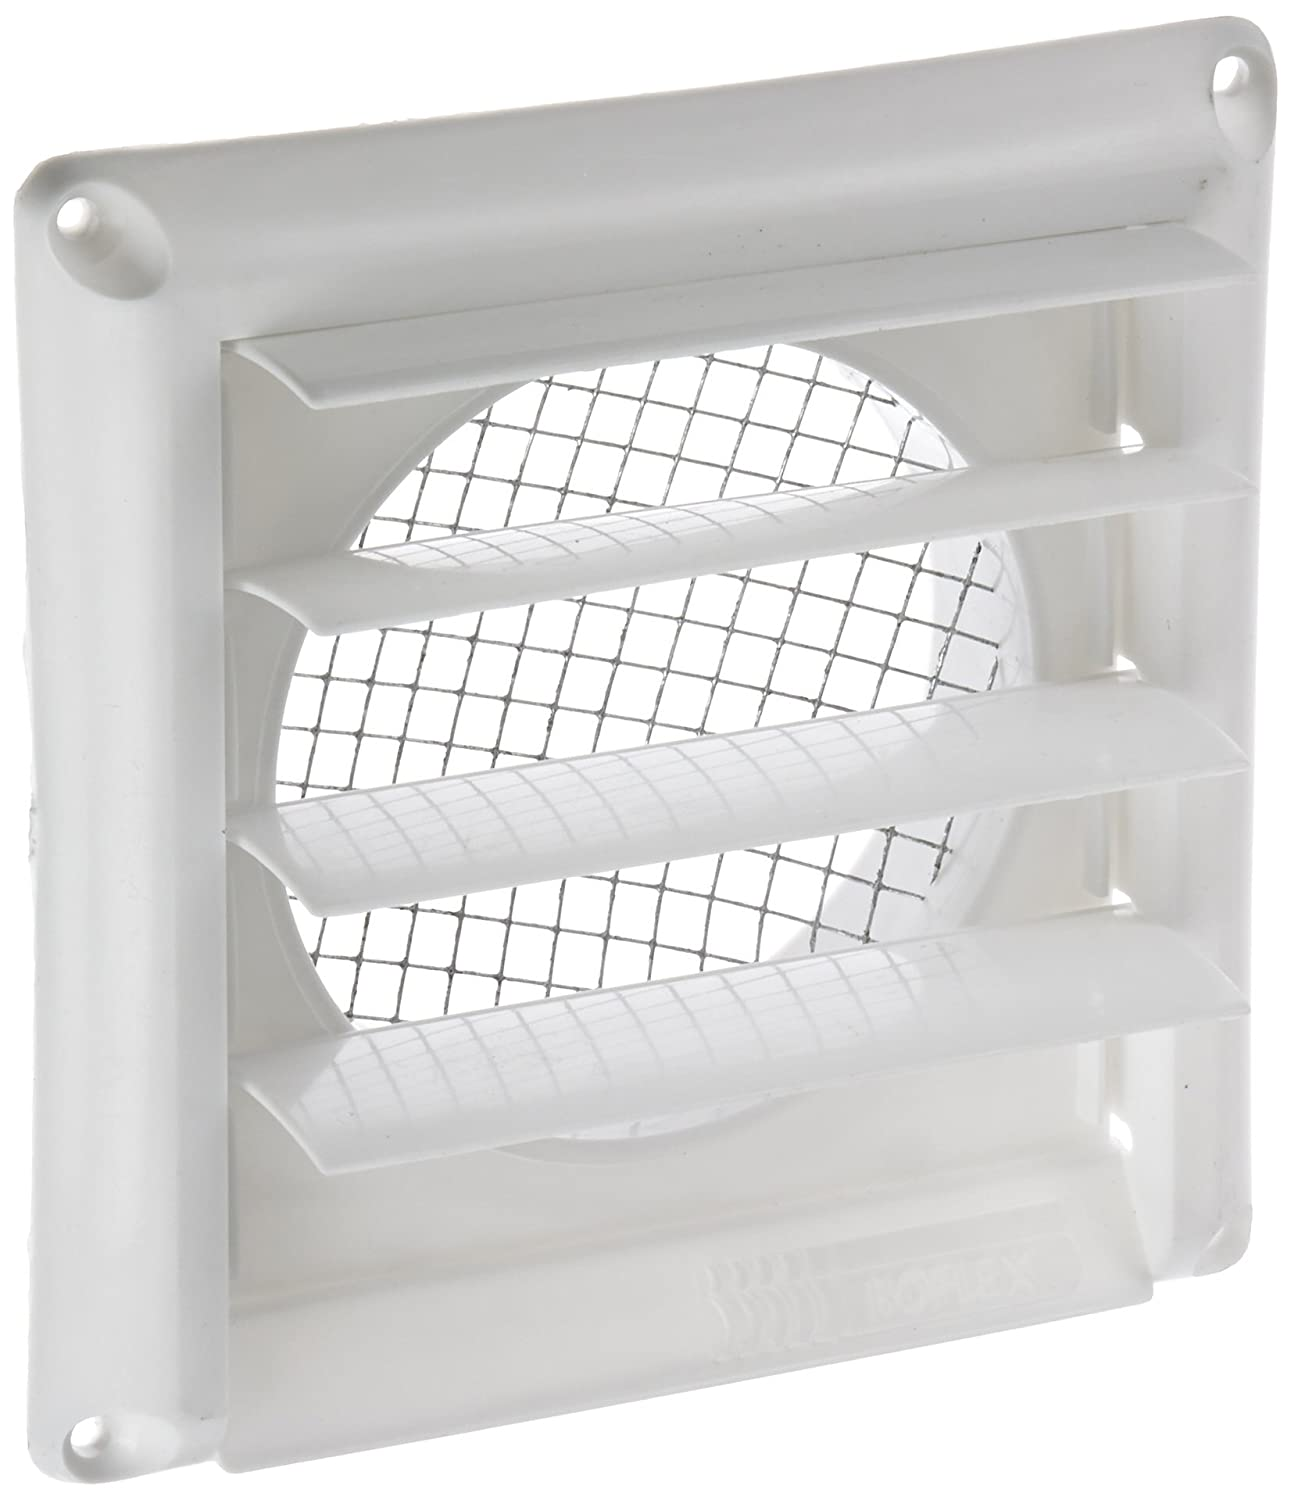 "Imperial 4"" Louvered Vent Cap with Metal Screen, White, GG-4W"